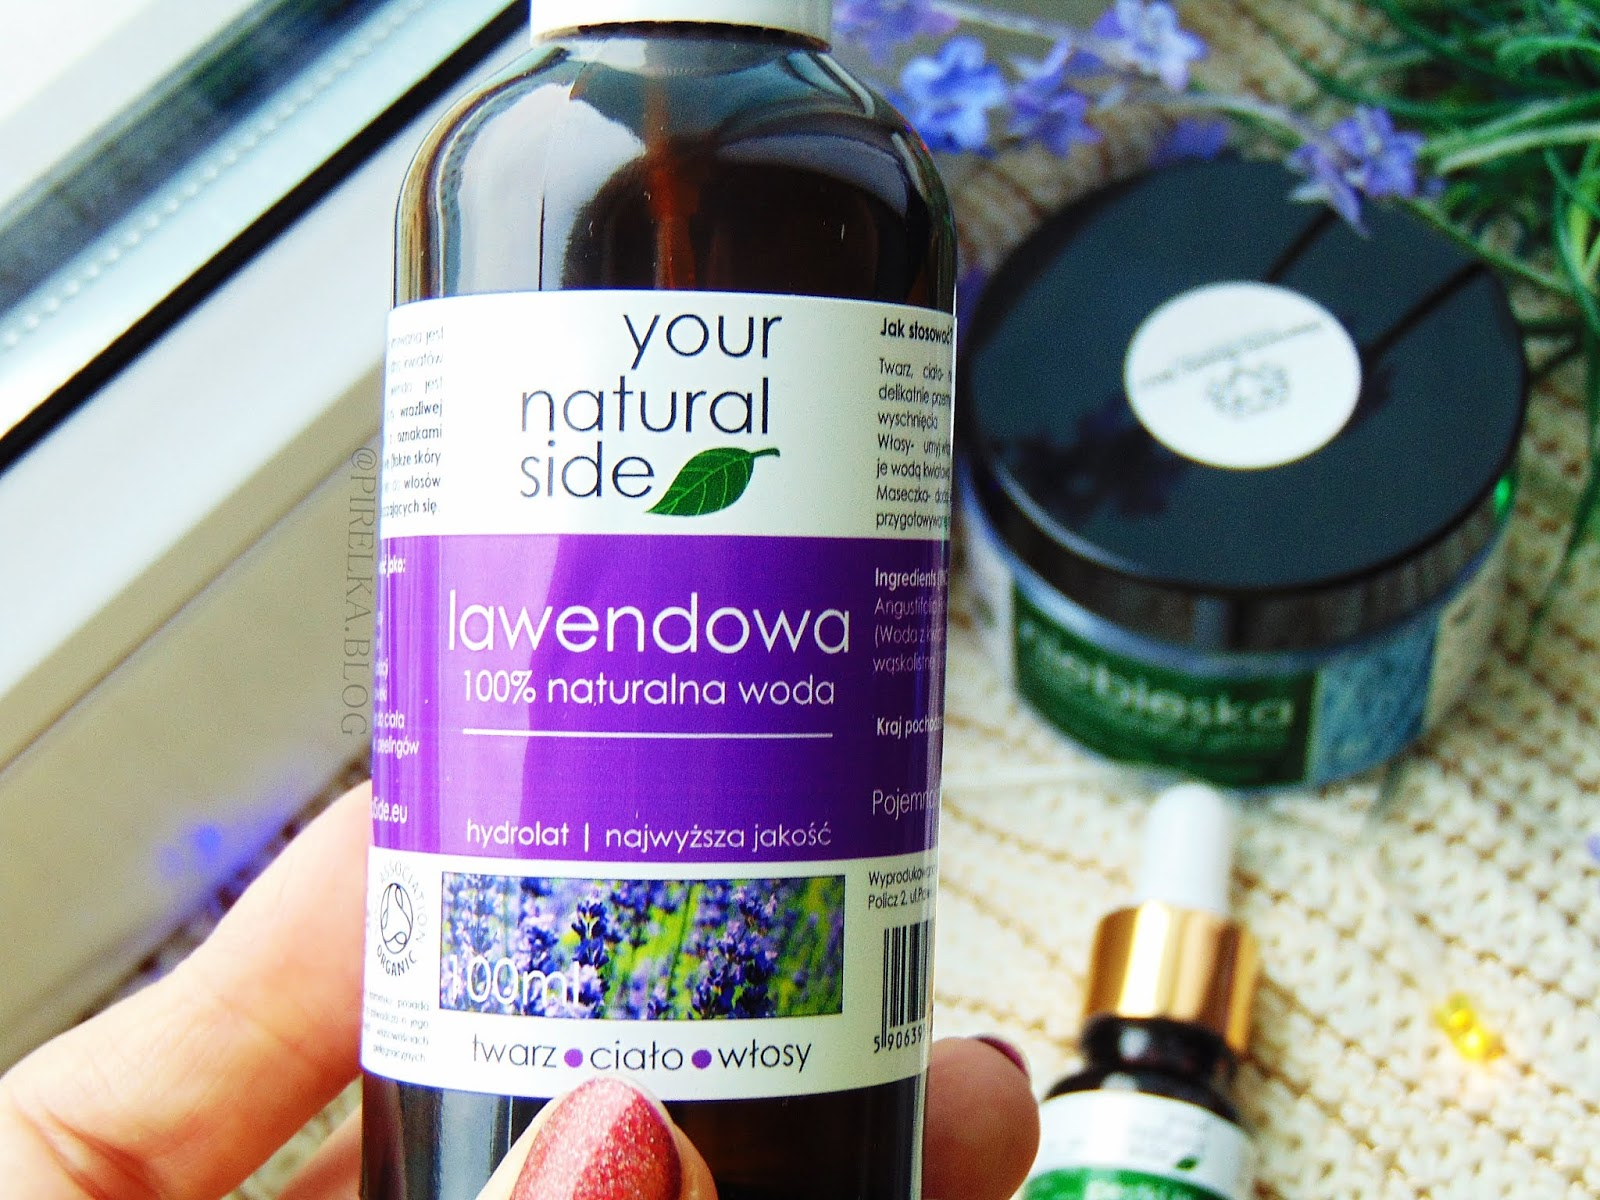 Hydrolat lawendowy - 100% naturalna woda, Your Natural Side